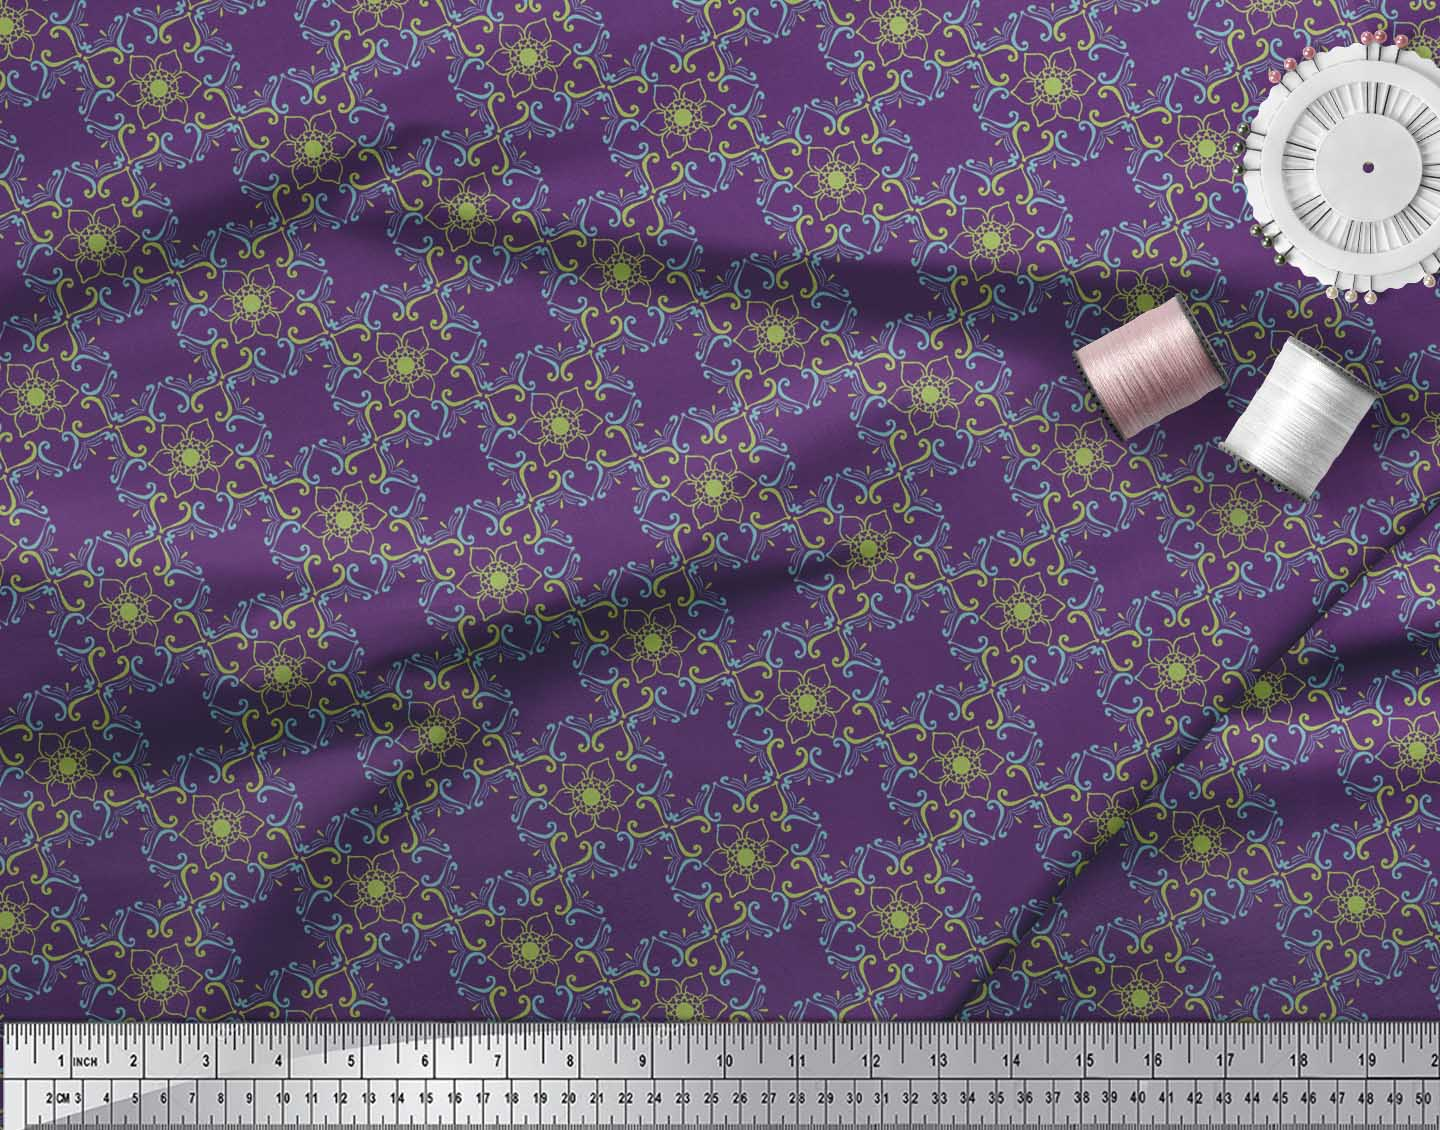 Soimoi-Purple-Cotton-Poplin-Fabric-Artistic-Flower-Damask-Printed-U8o thumbnail 4